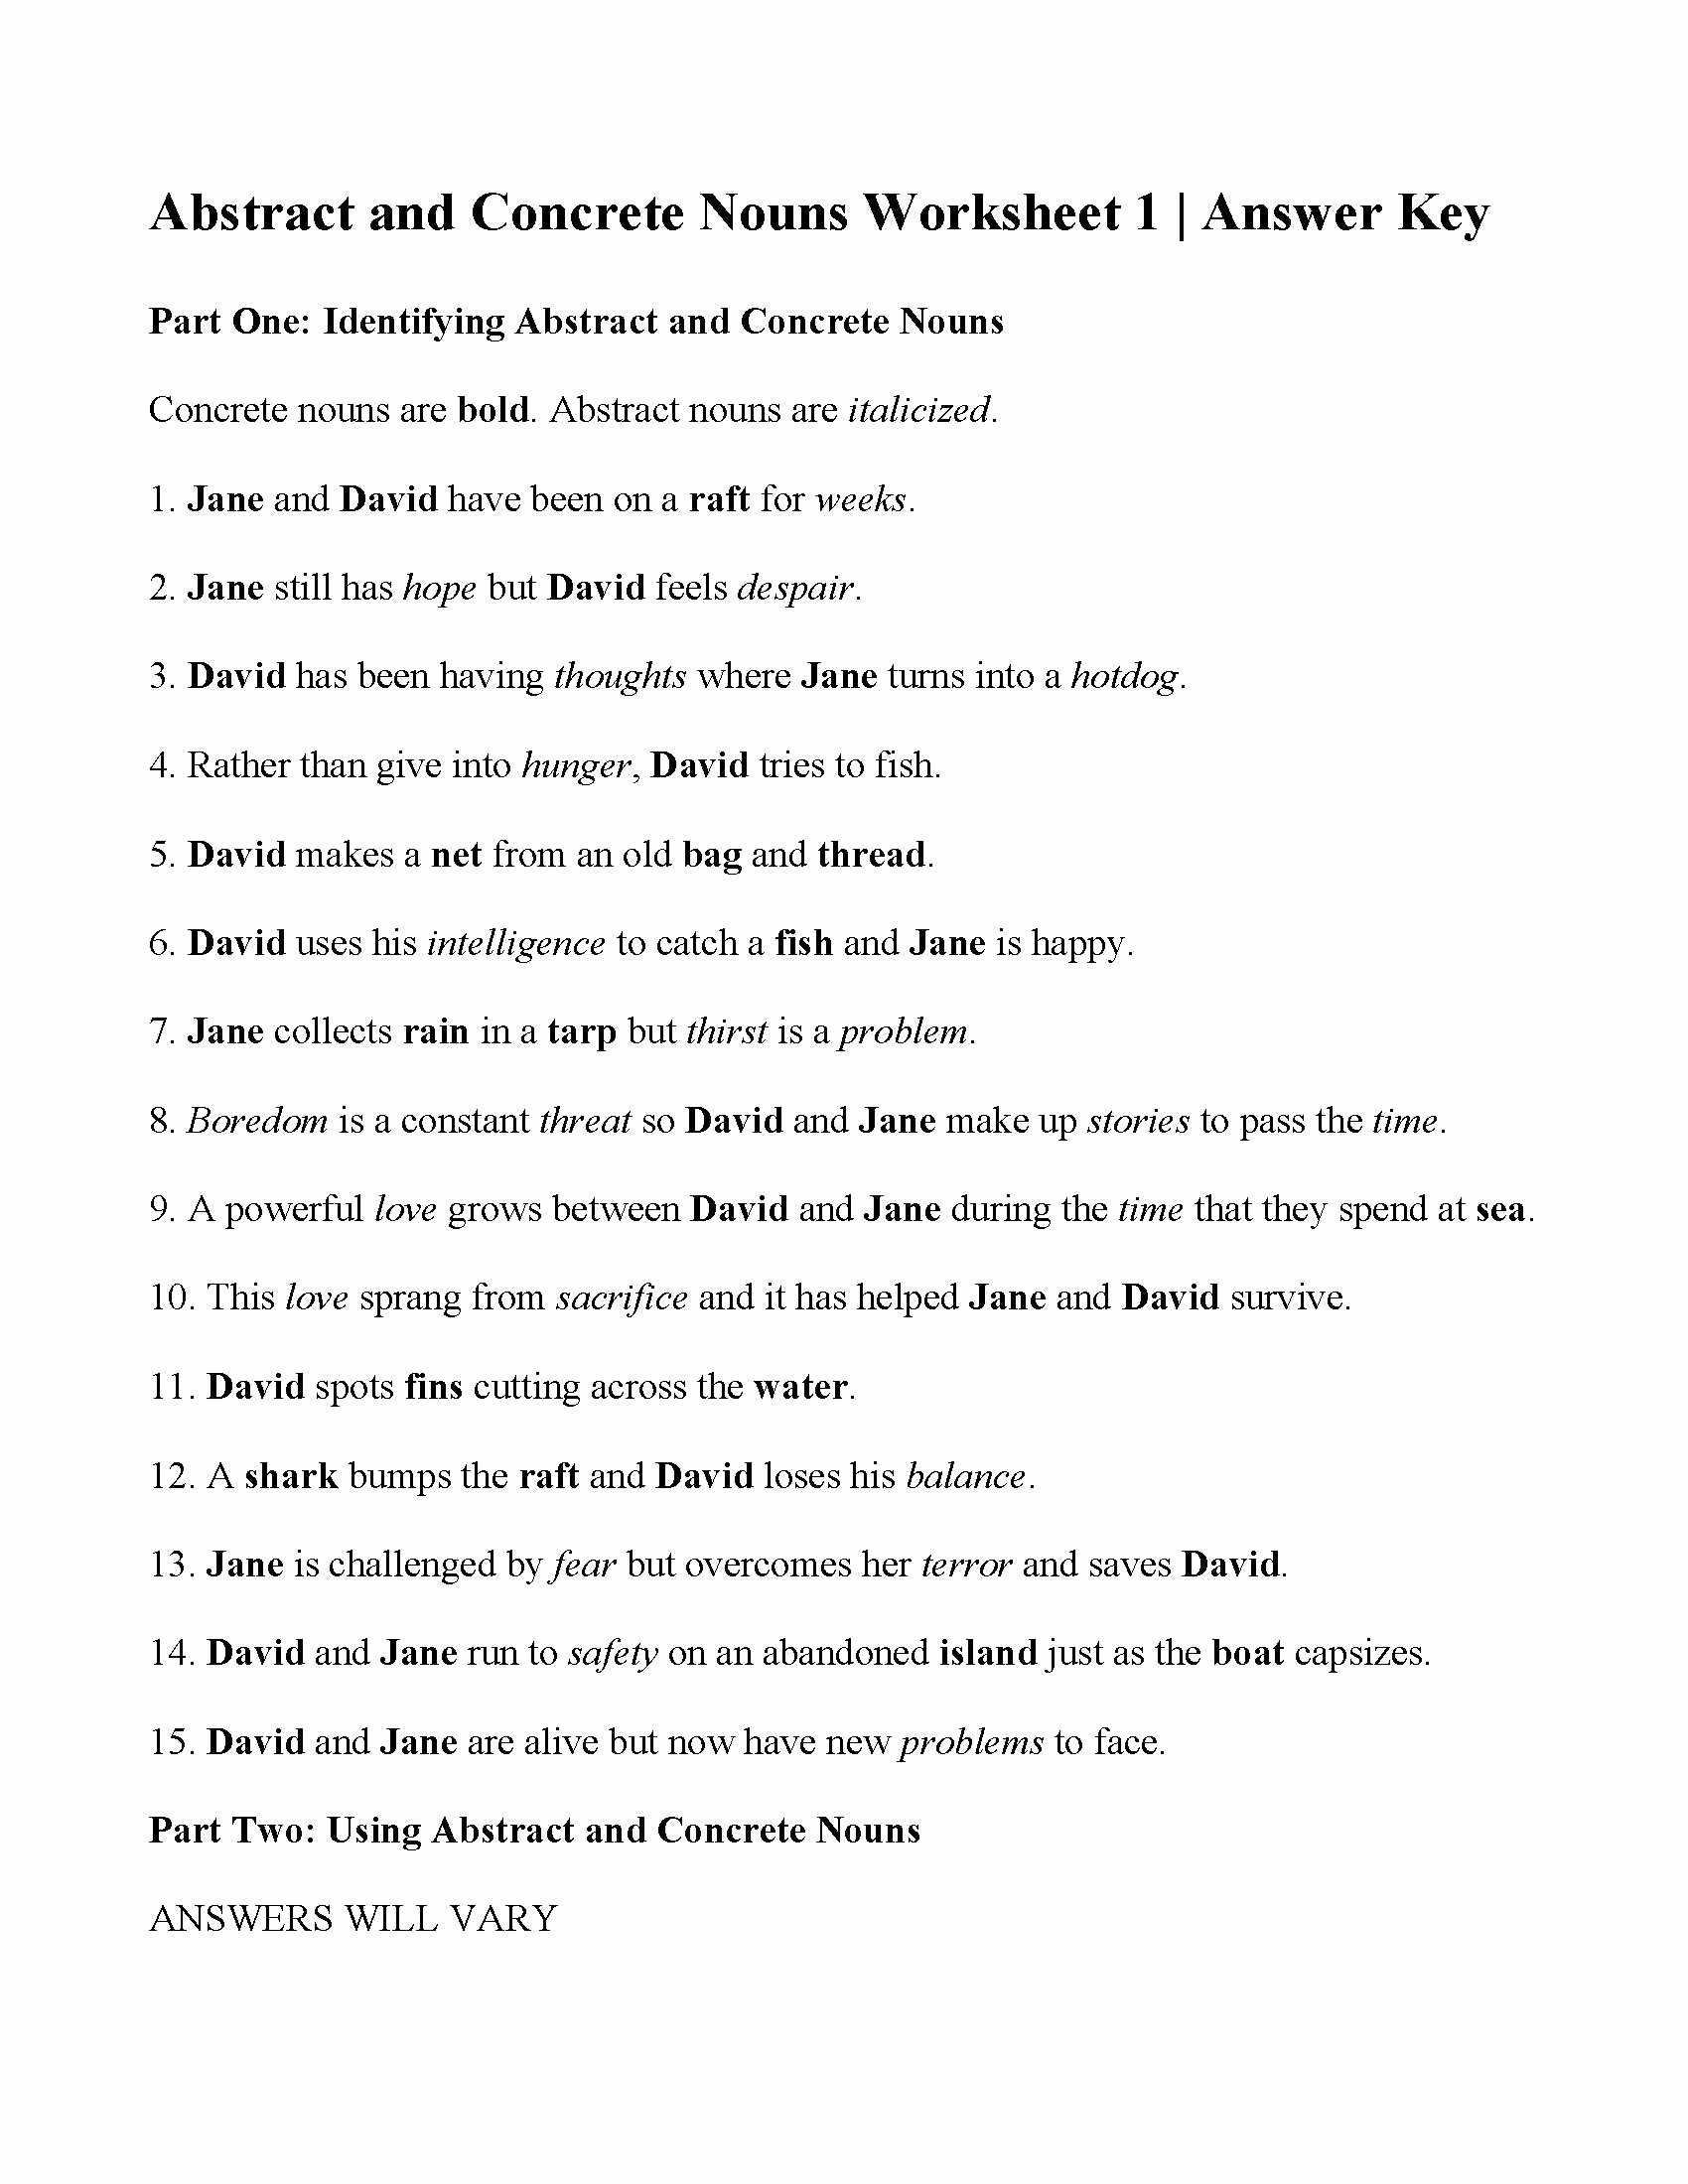 Concrete and Abstract Nouns Worksheet Elegant Concrete and Abstract Nouns Worksheet